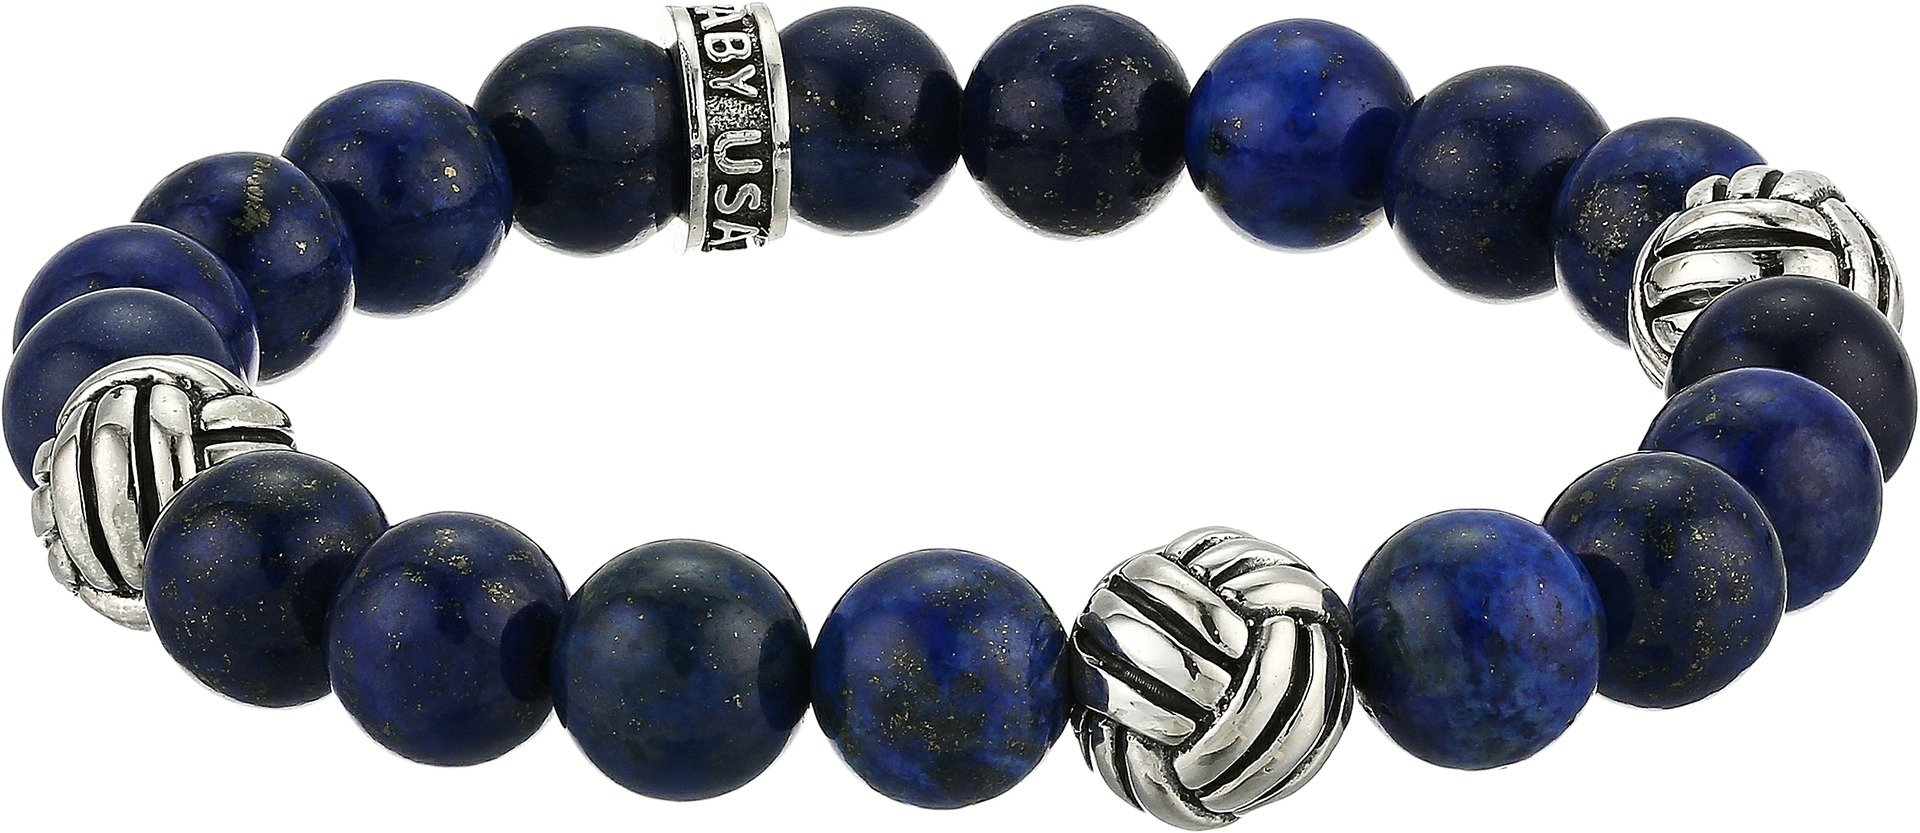 King Baby Studio Men's Tri Monkey Knot 10mm Beaded Bracelet Lapis Bracelet